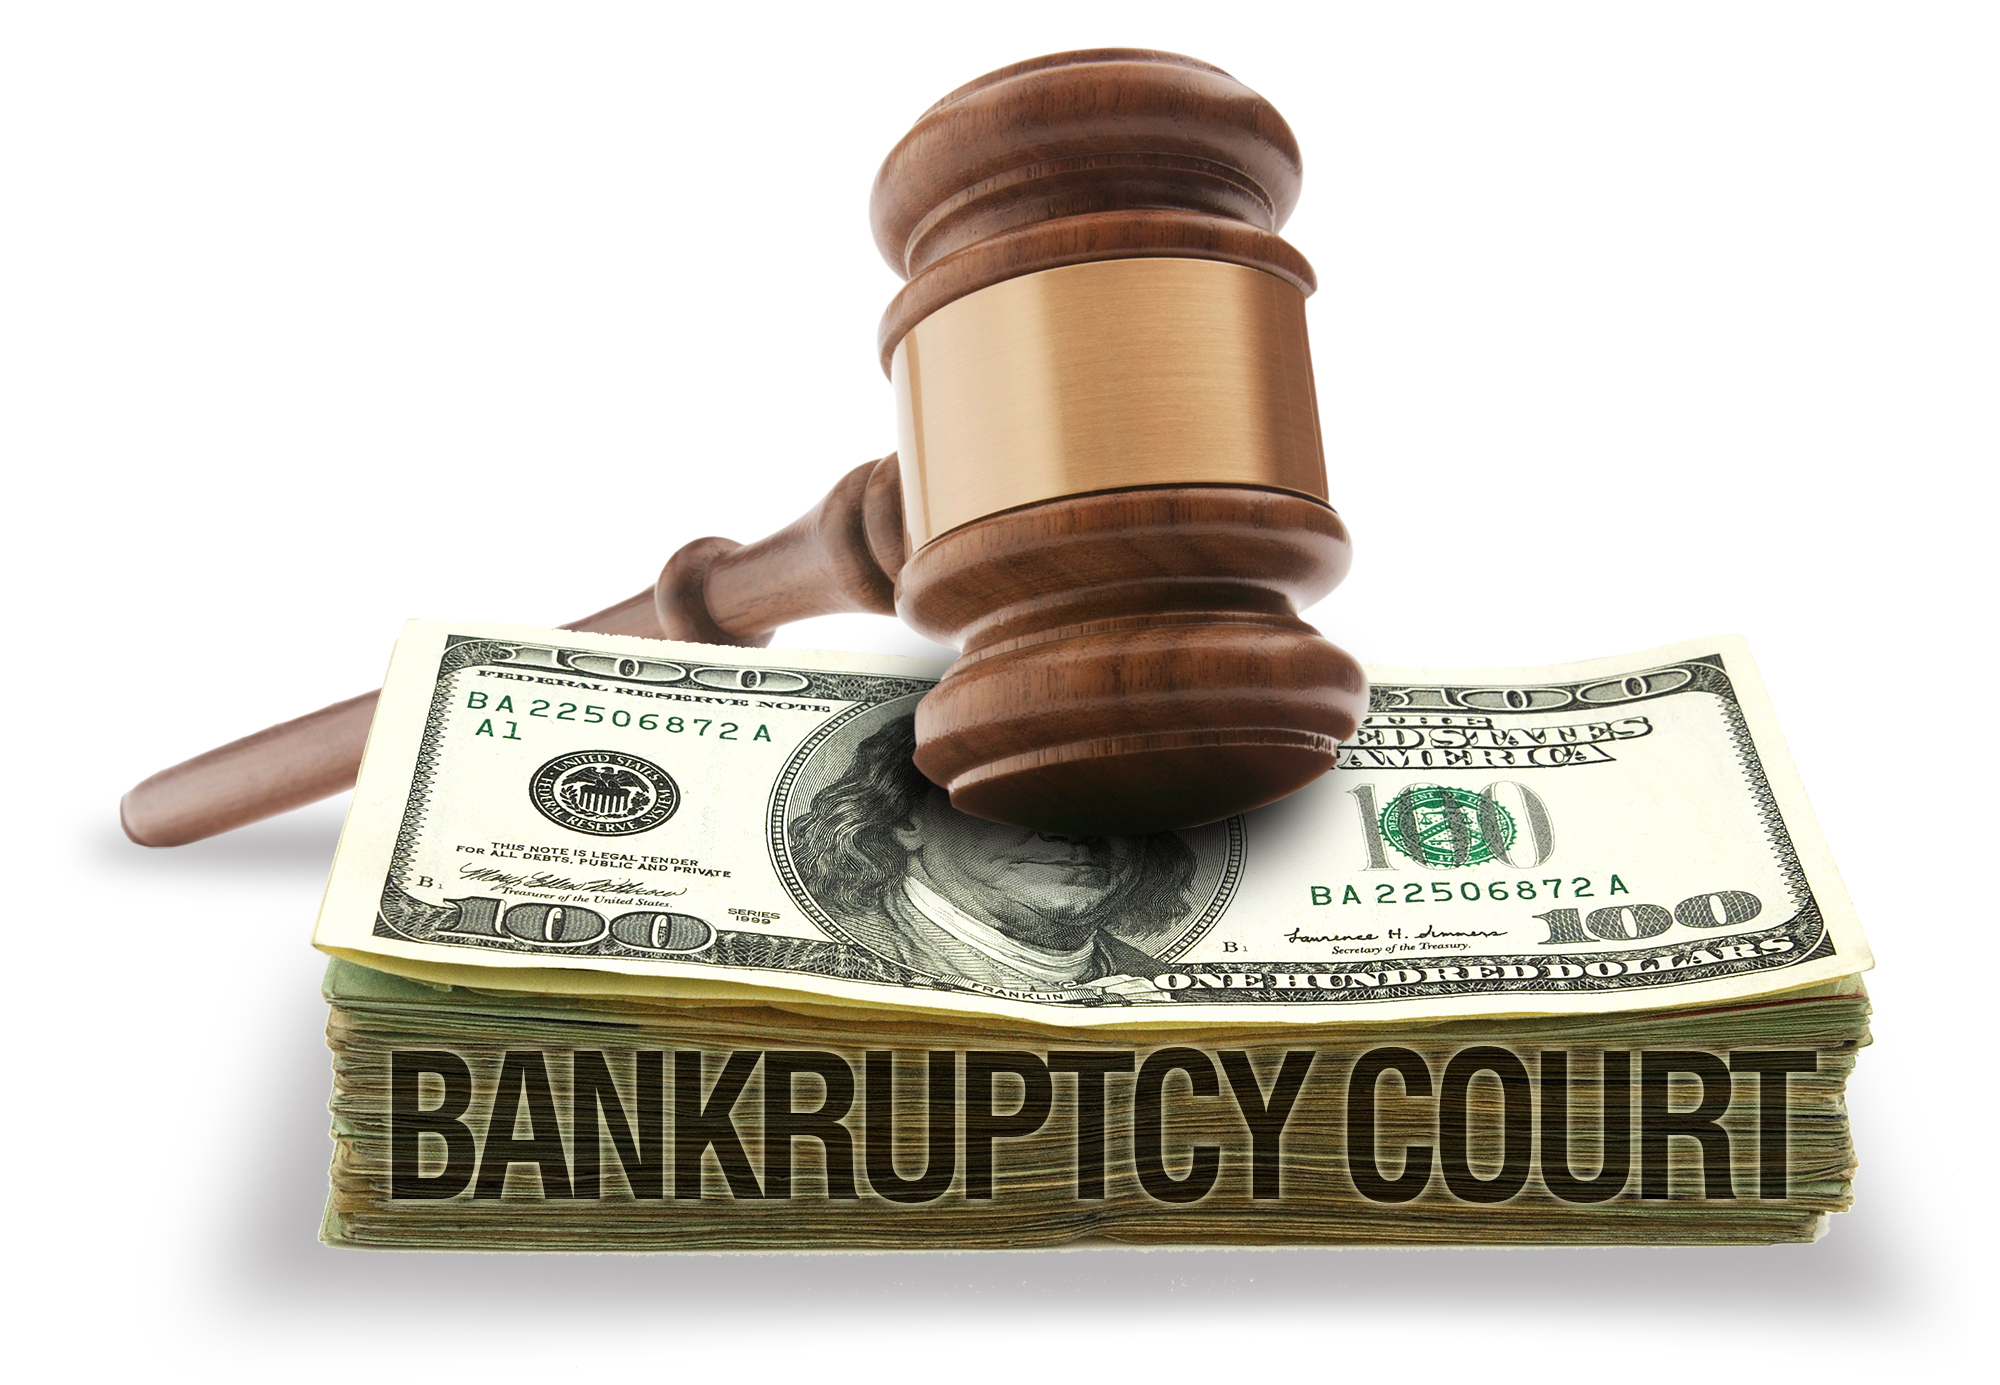 Stock image depicting a gavel resting on top of a stack of money displaying the words Bankruptcy Court.